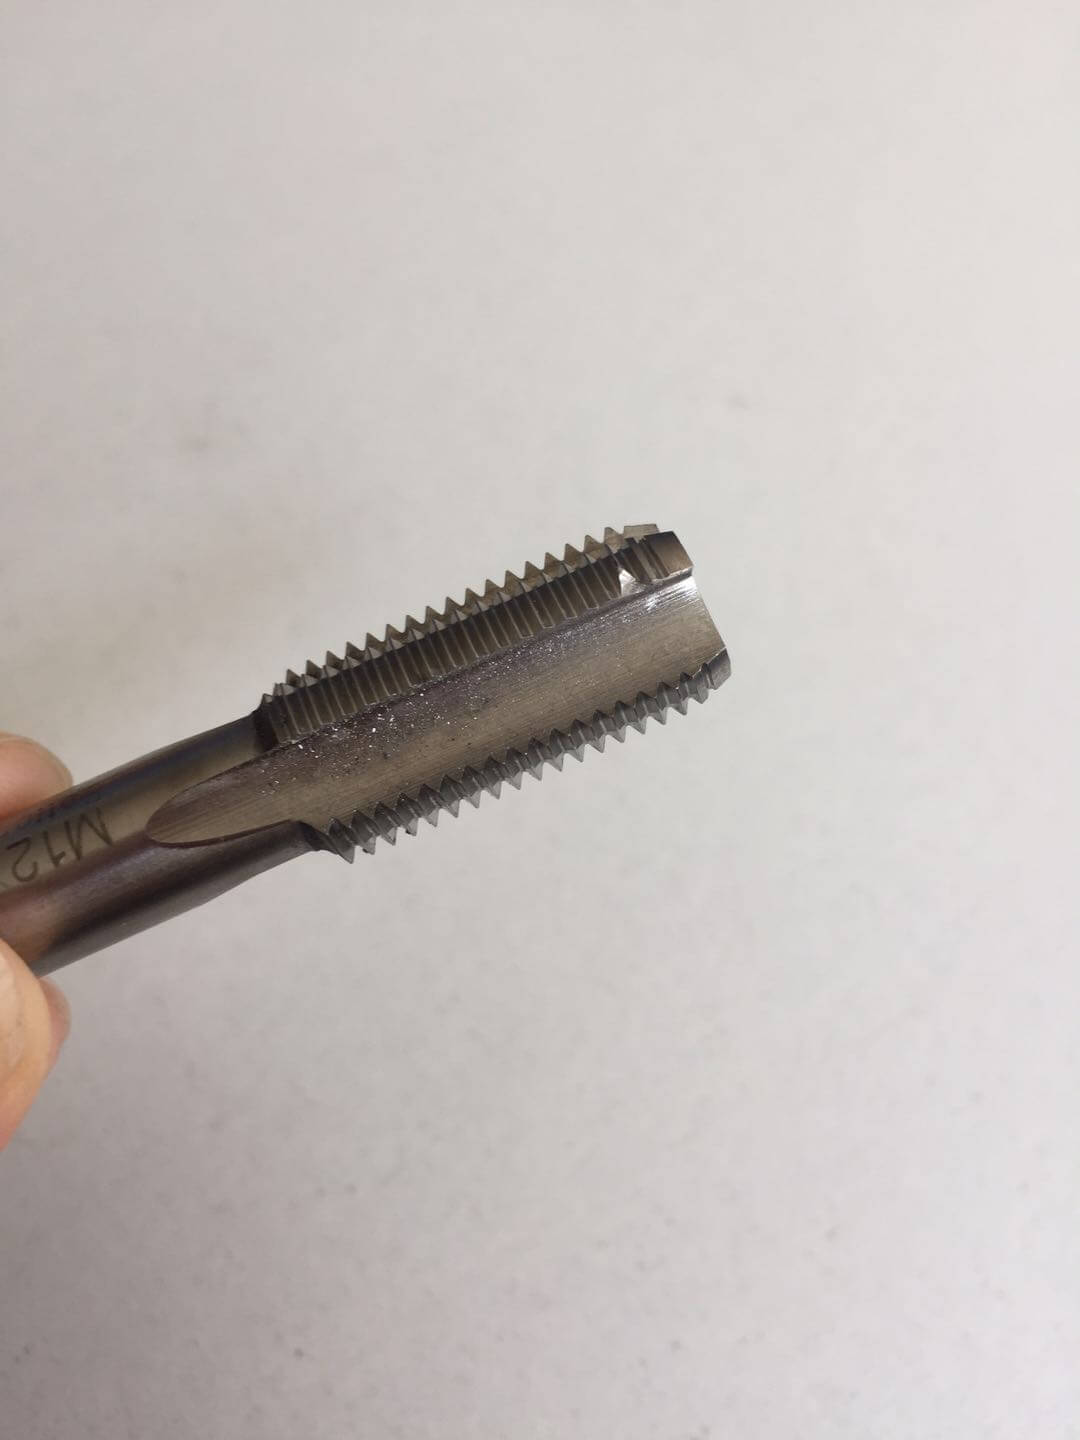 369aba281079794a0b0f98dda699279 - How to judge the wear of the cutting tools and what improvement methods are there?